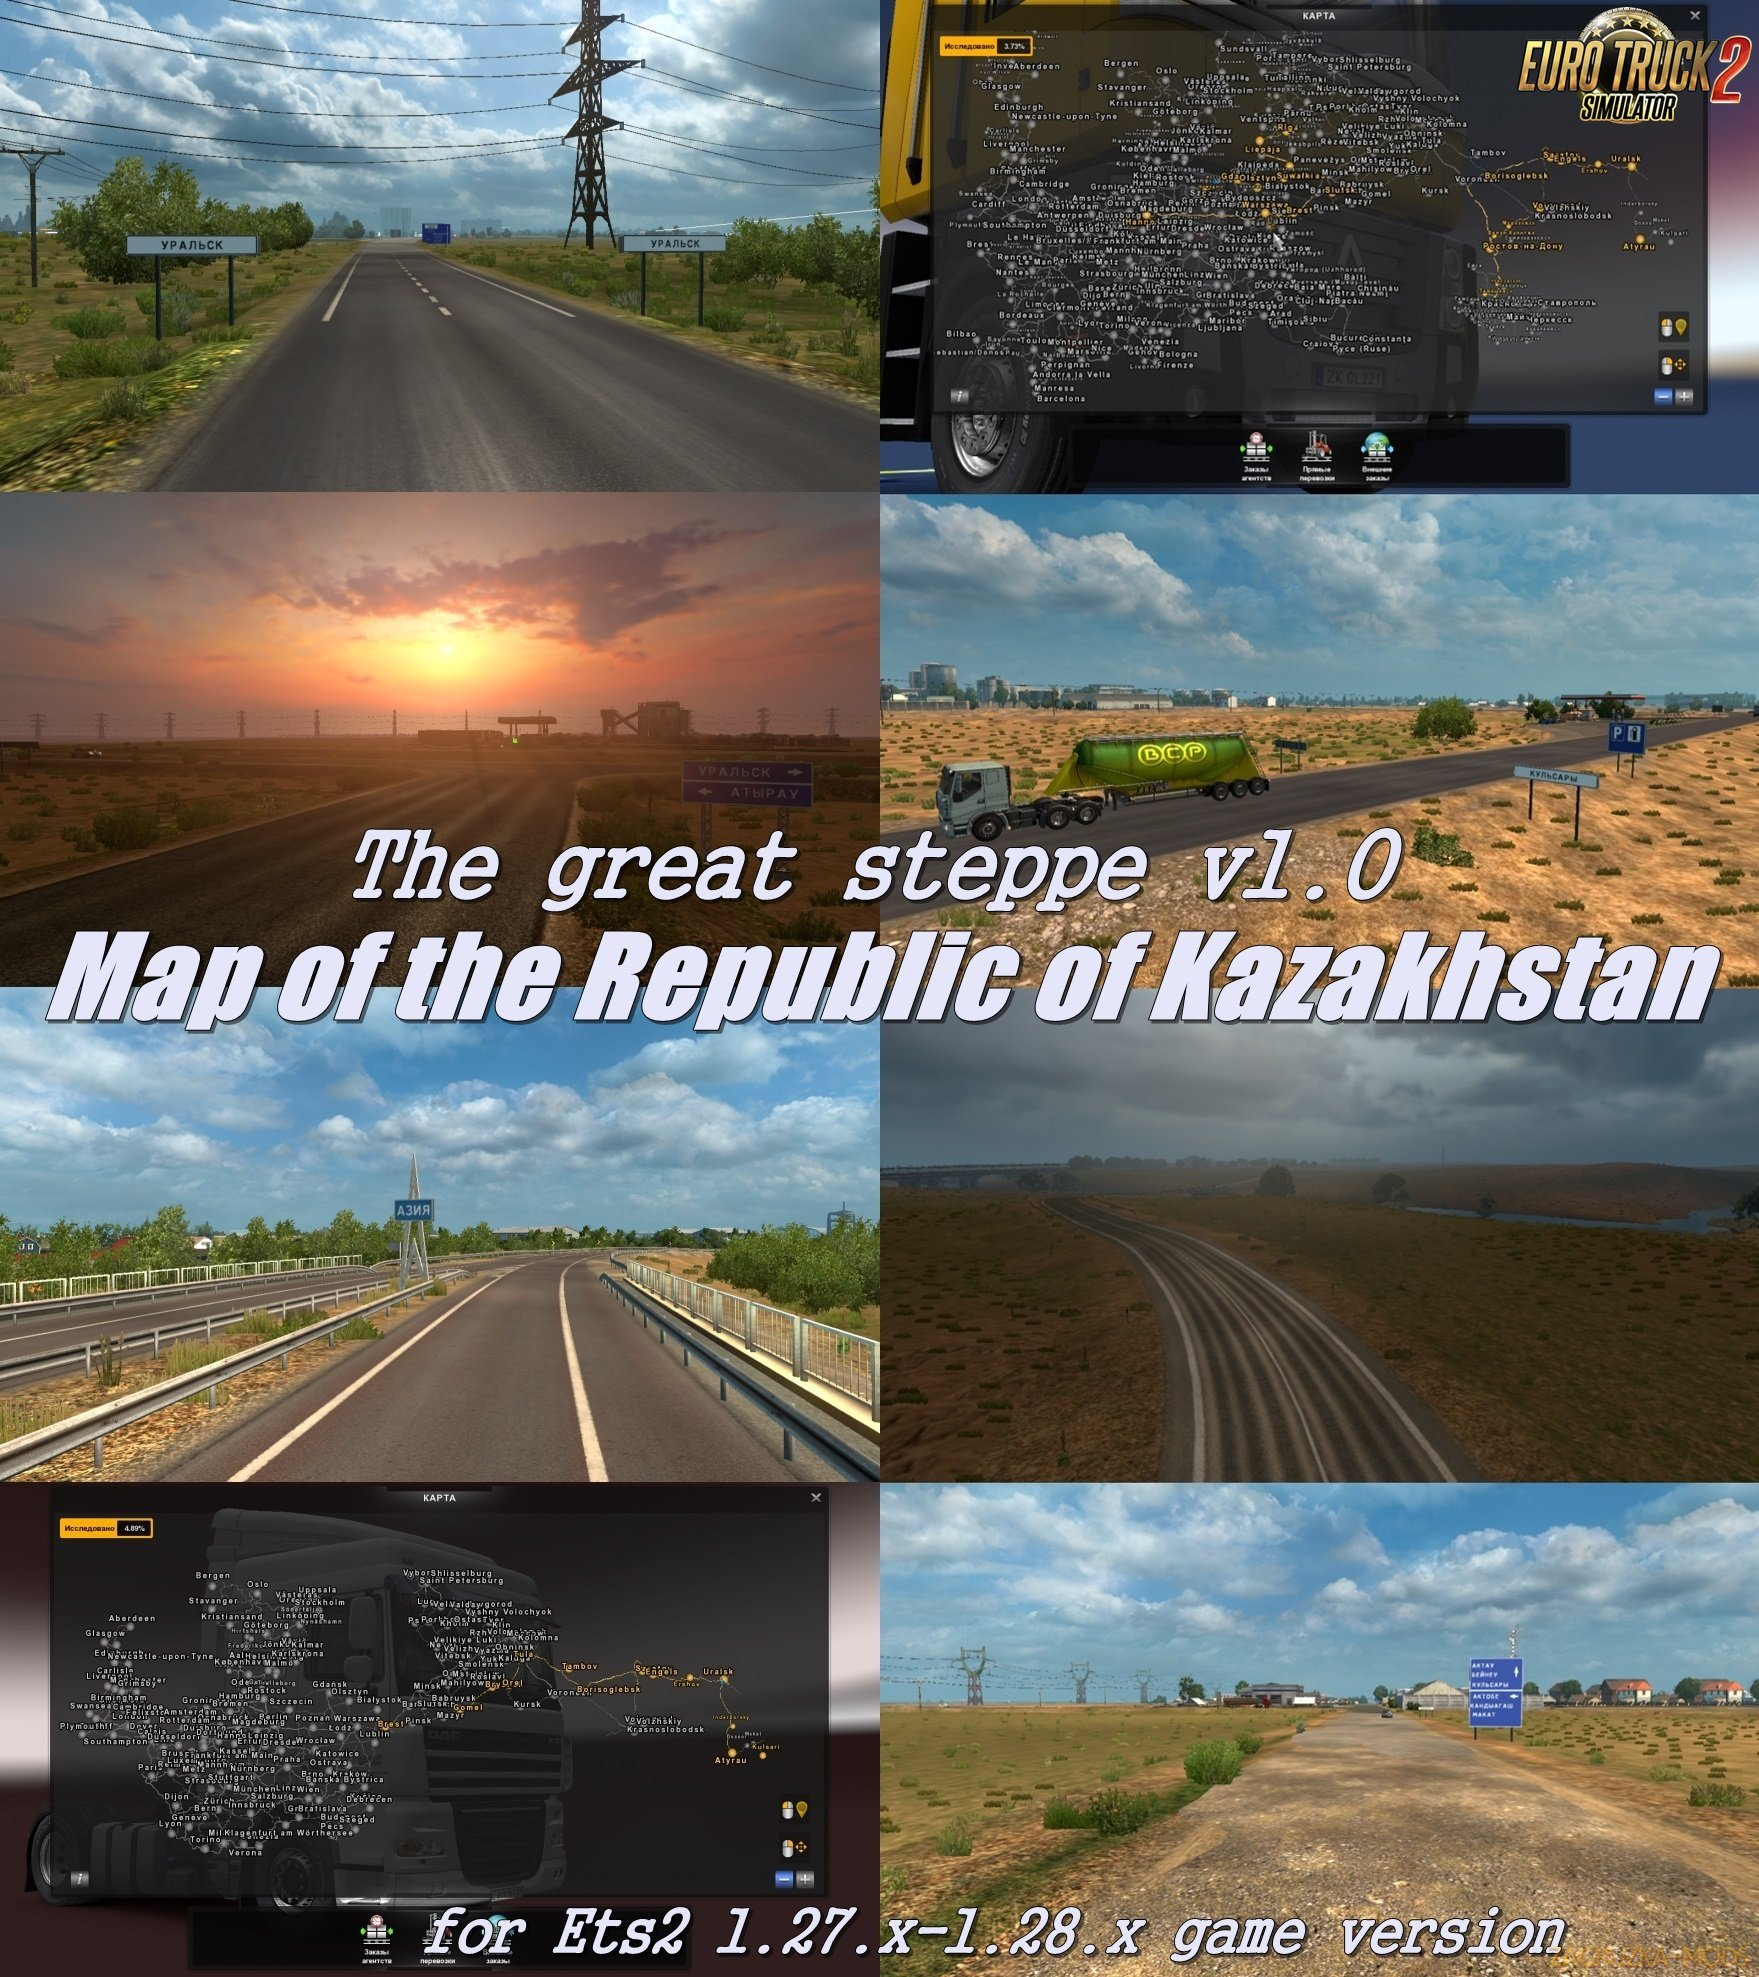 The great steppe v1.0